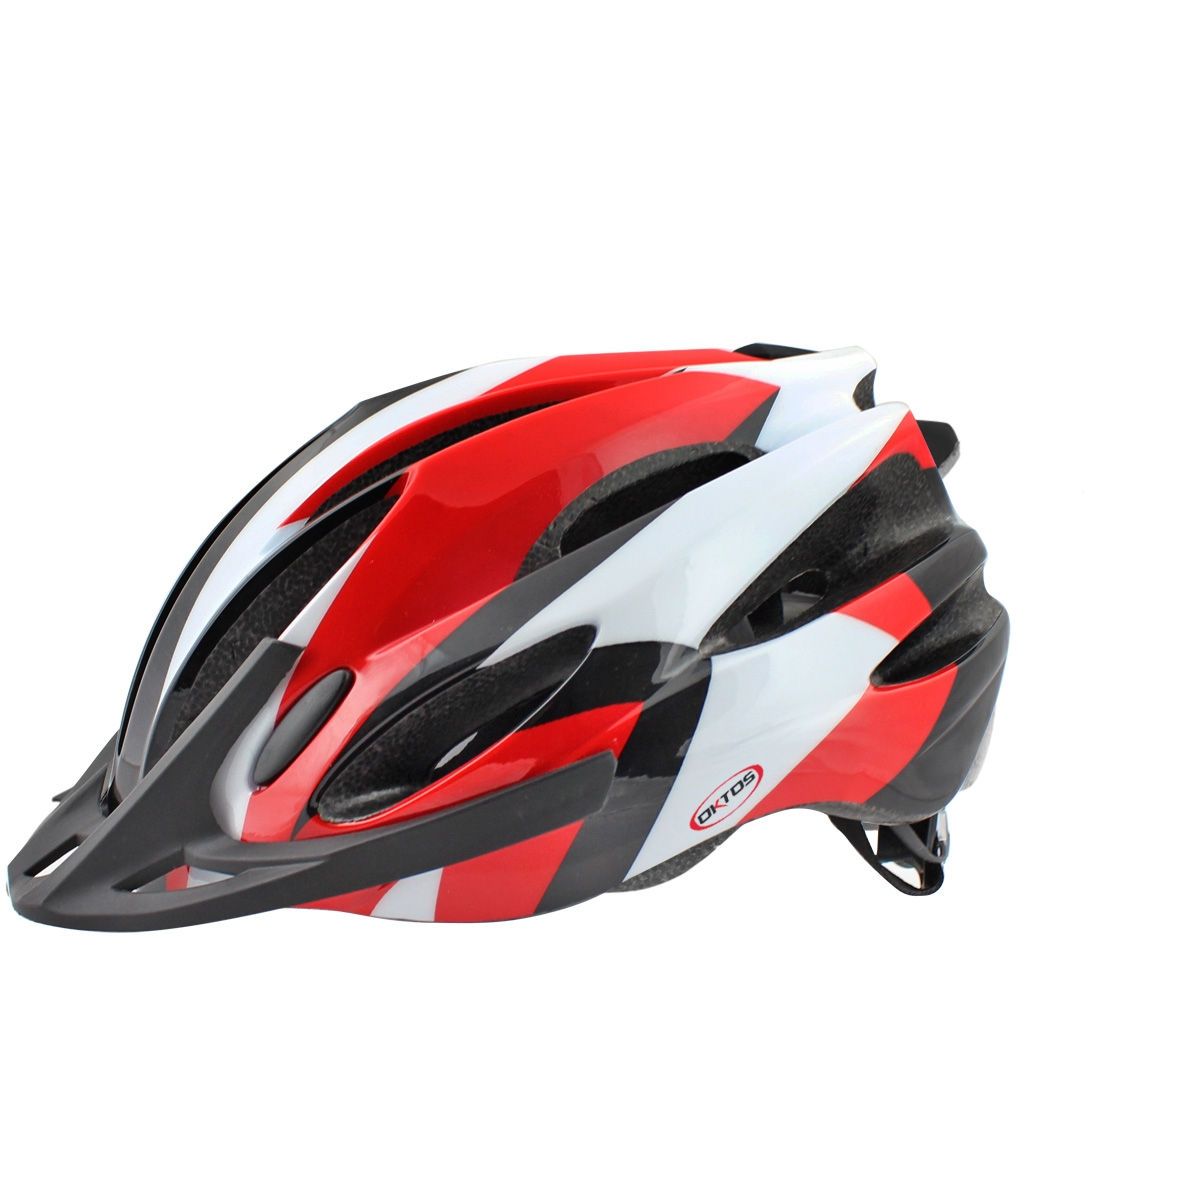 Casque vélo Oktos Adulte Rouge/Blanc - 54/58